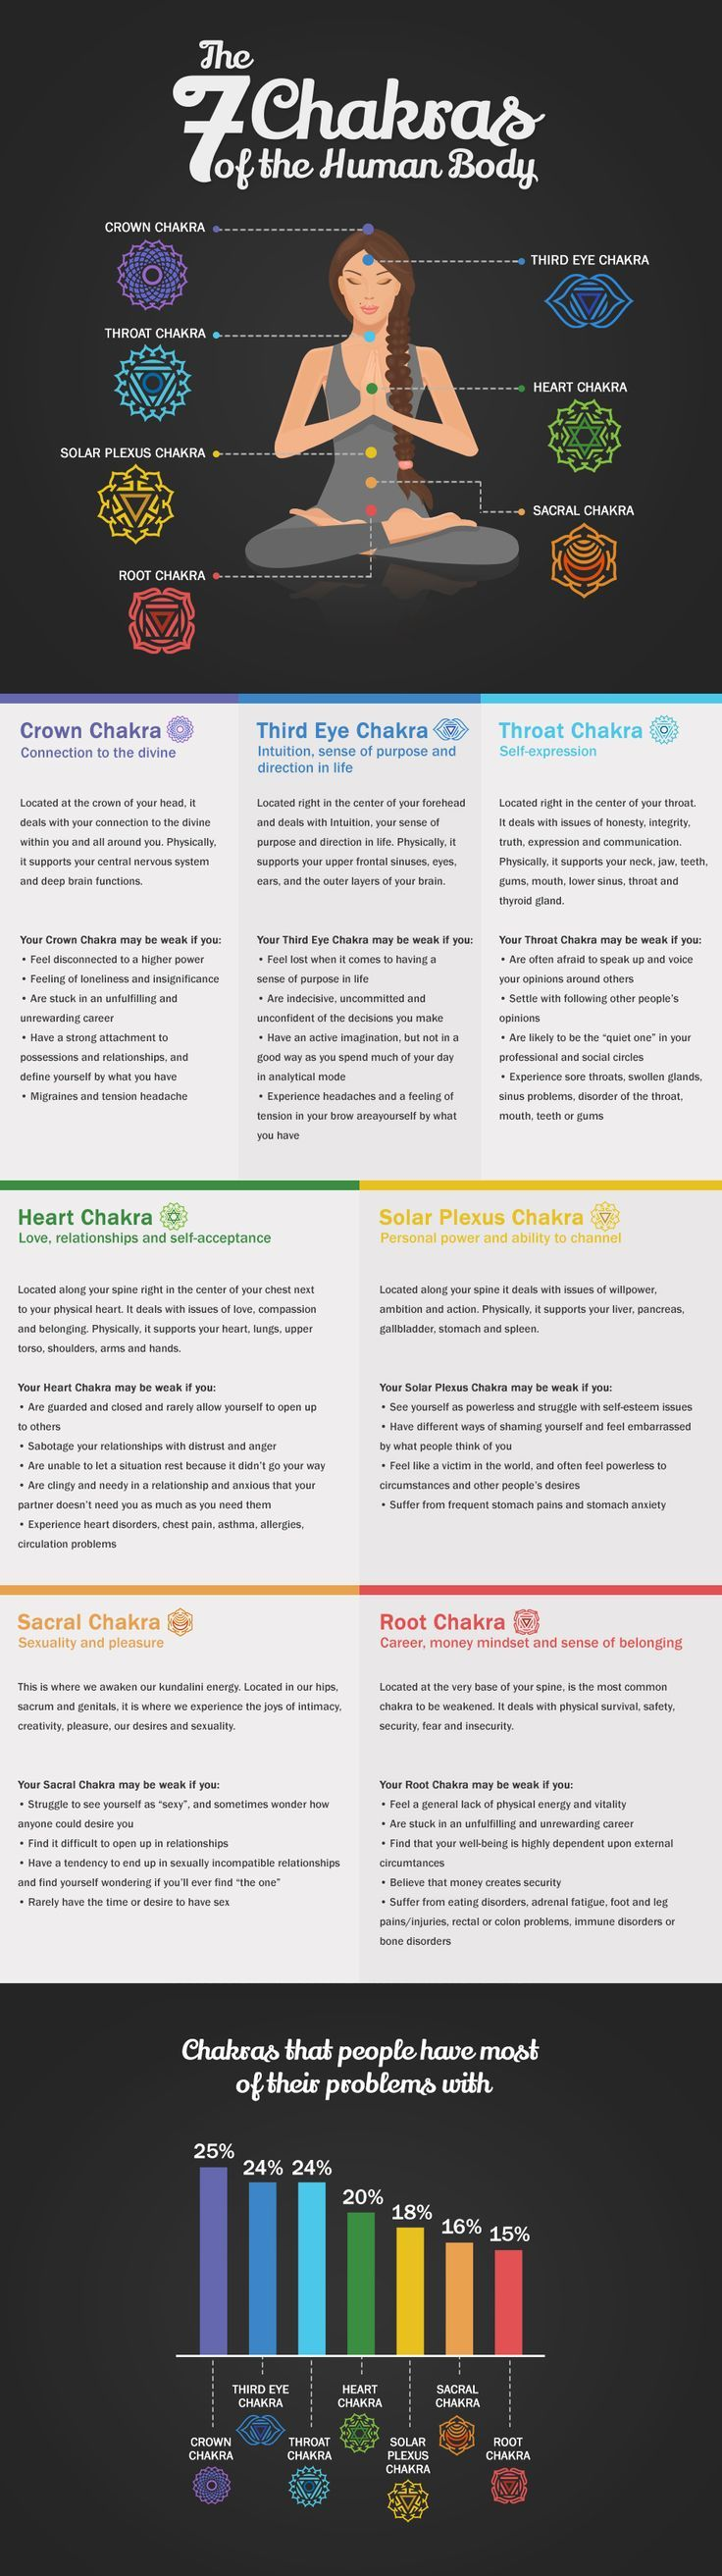 Chakras Infographic! Come to Clarkston Hot Yoga in Clarkston, MI for all of your Yoga and fitness needs! Feel free to call (248) 620-7101 or visit our website http://www.clarkstonhotyoga.com for more information about the classes we offer!